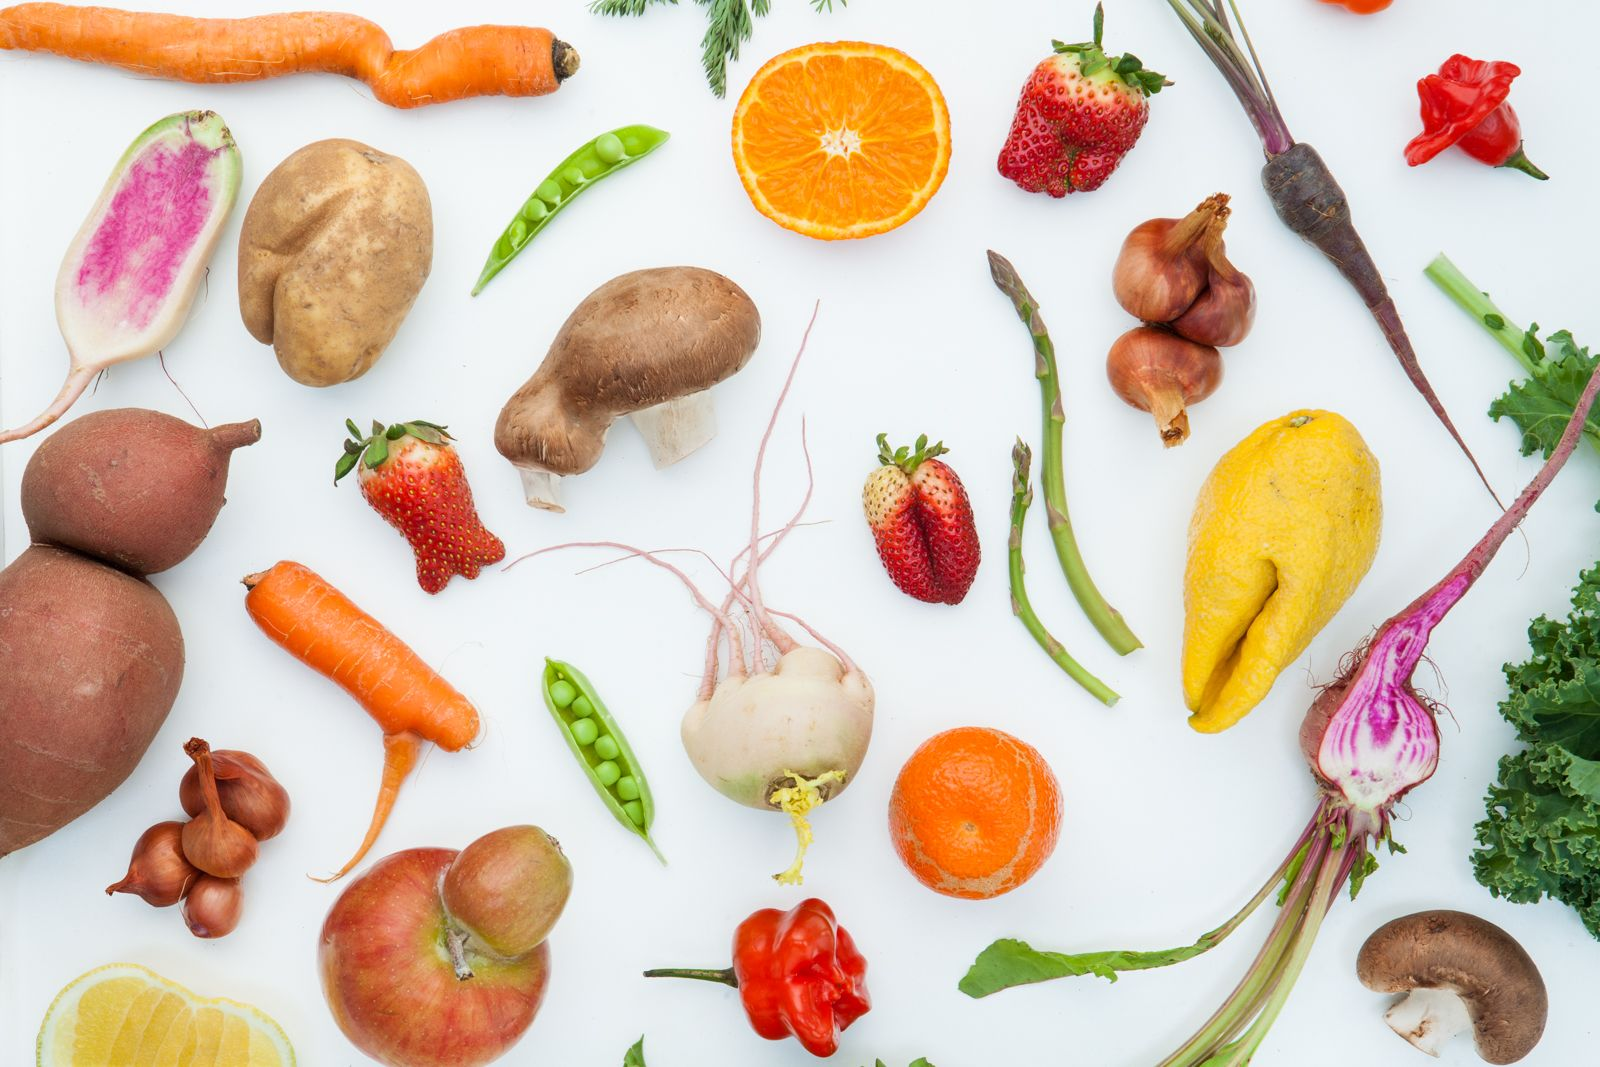 Imperfect Produce acquires produce/veg rejected simply